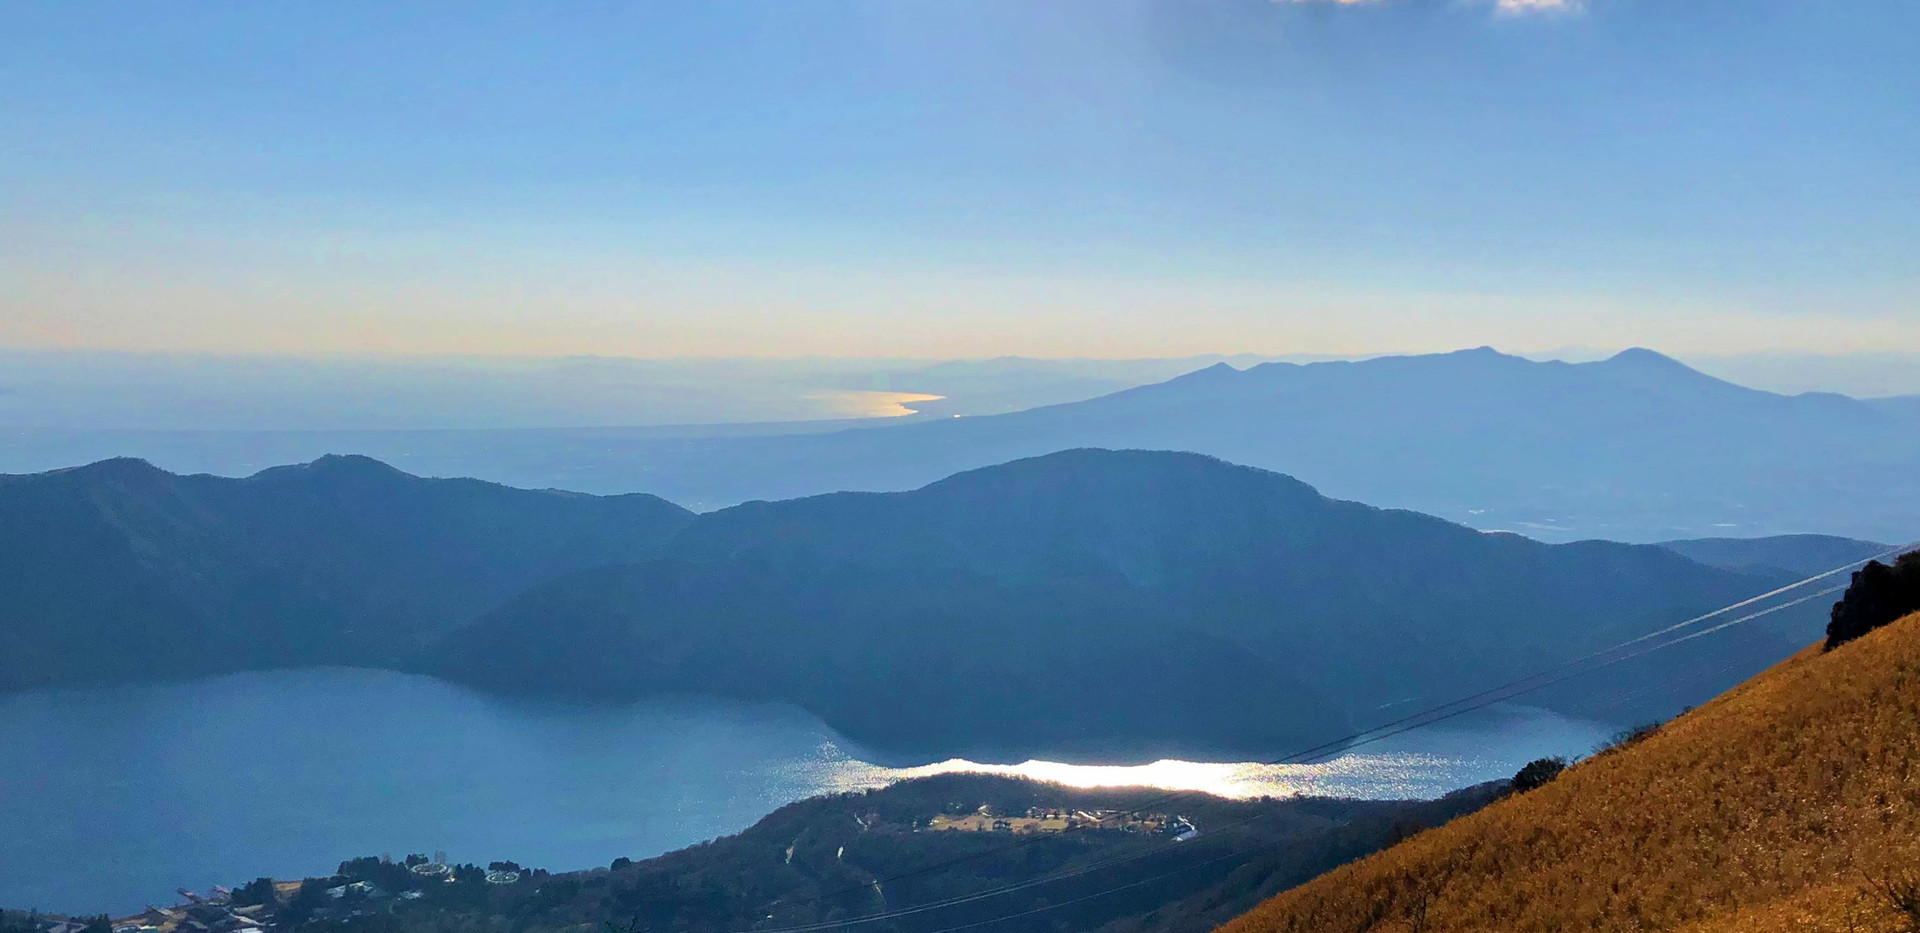 6. View from the top of Hakone Komagatak